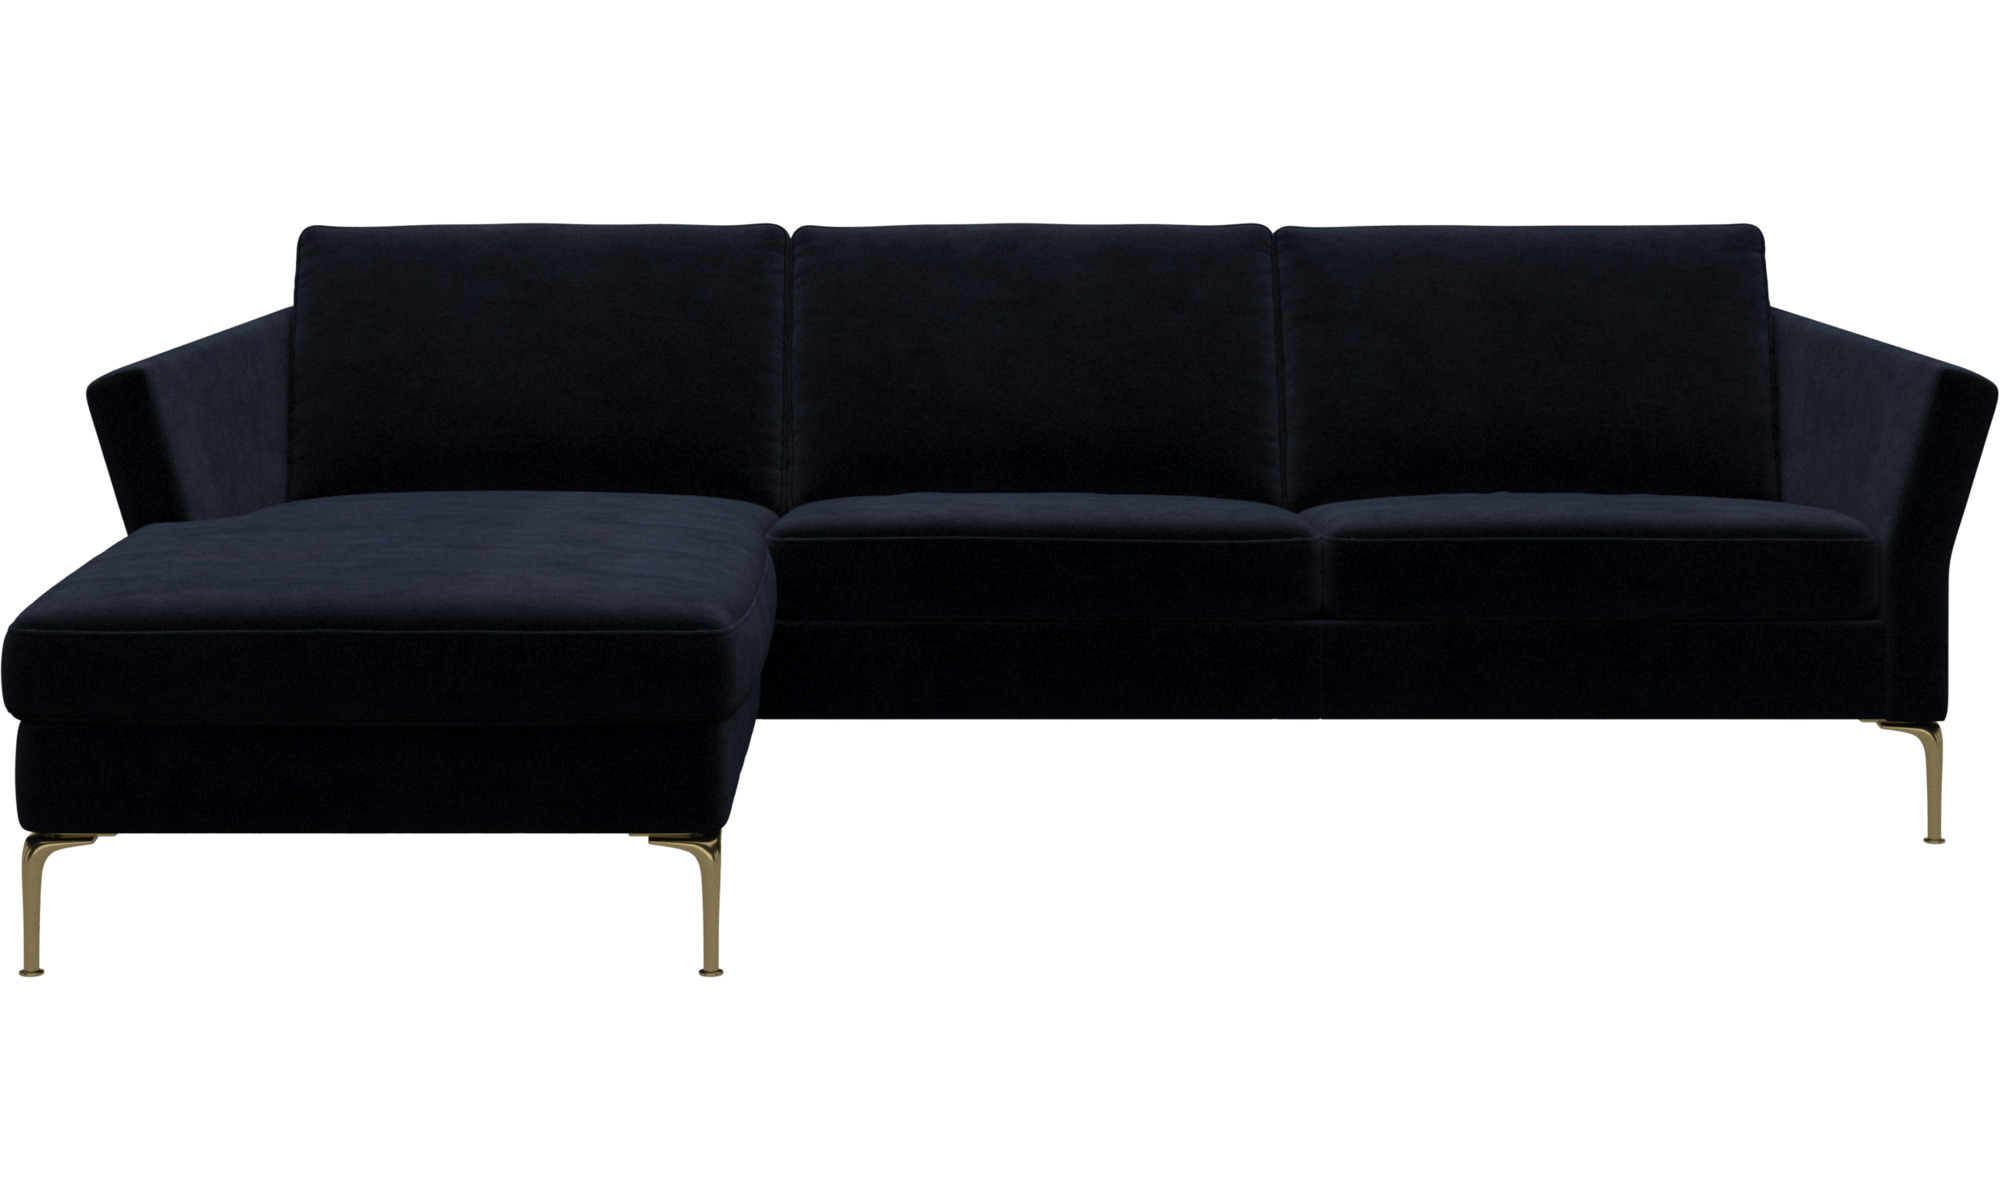 Chaise Lounge Sofas Mille 2 5 Seaters With Longue Sofa